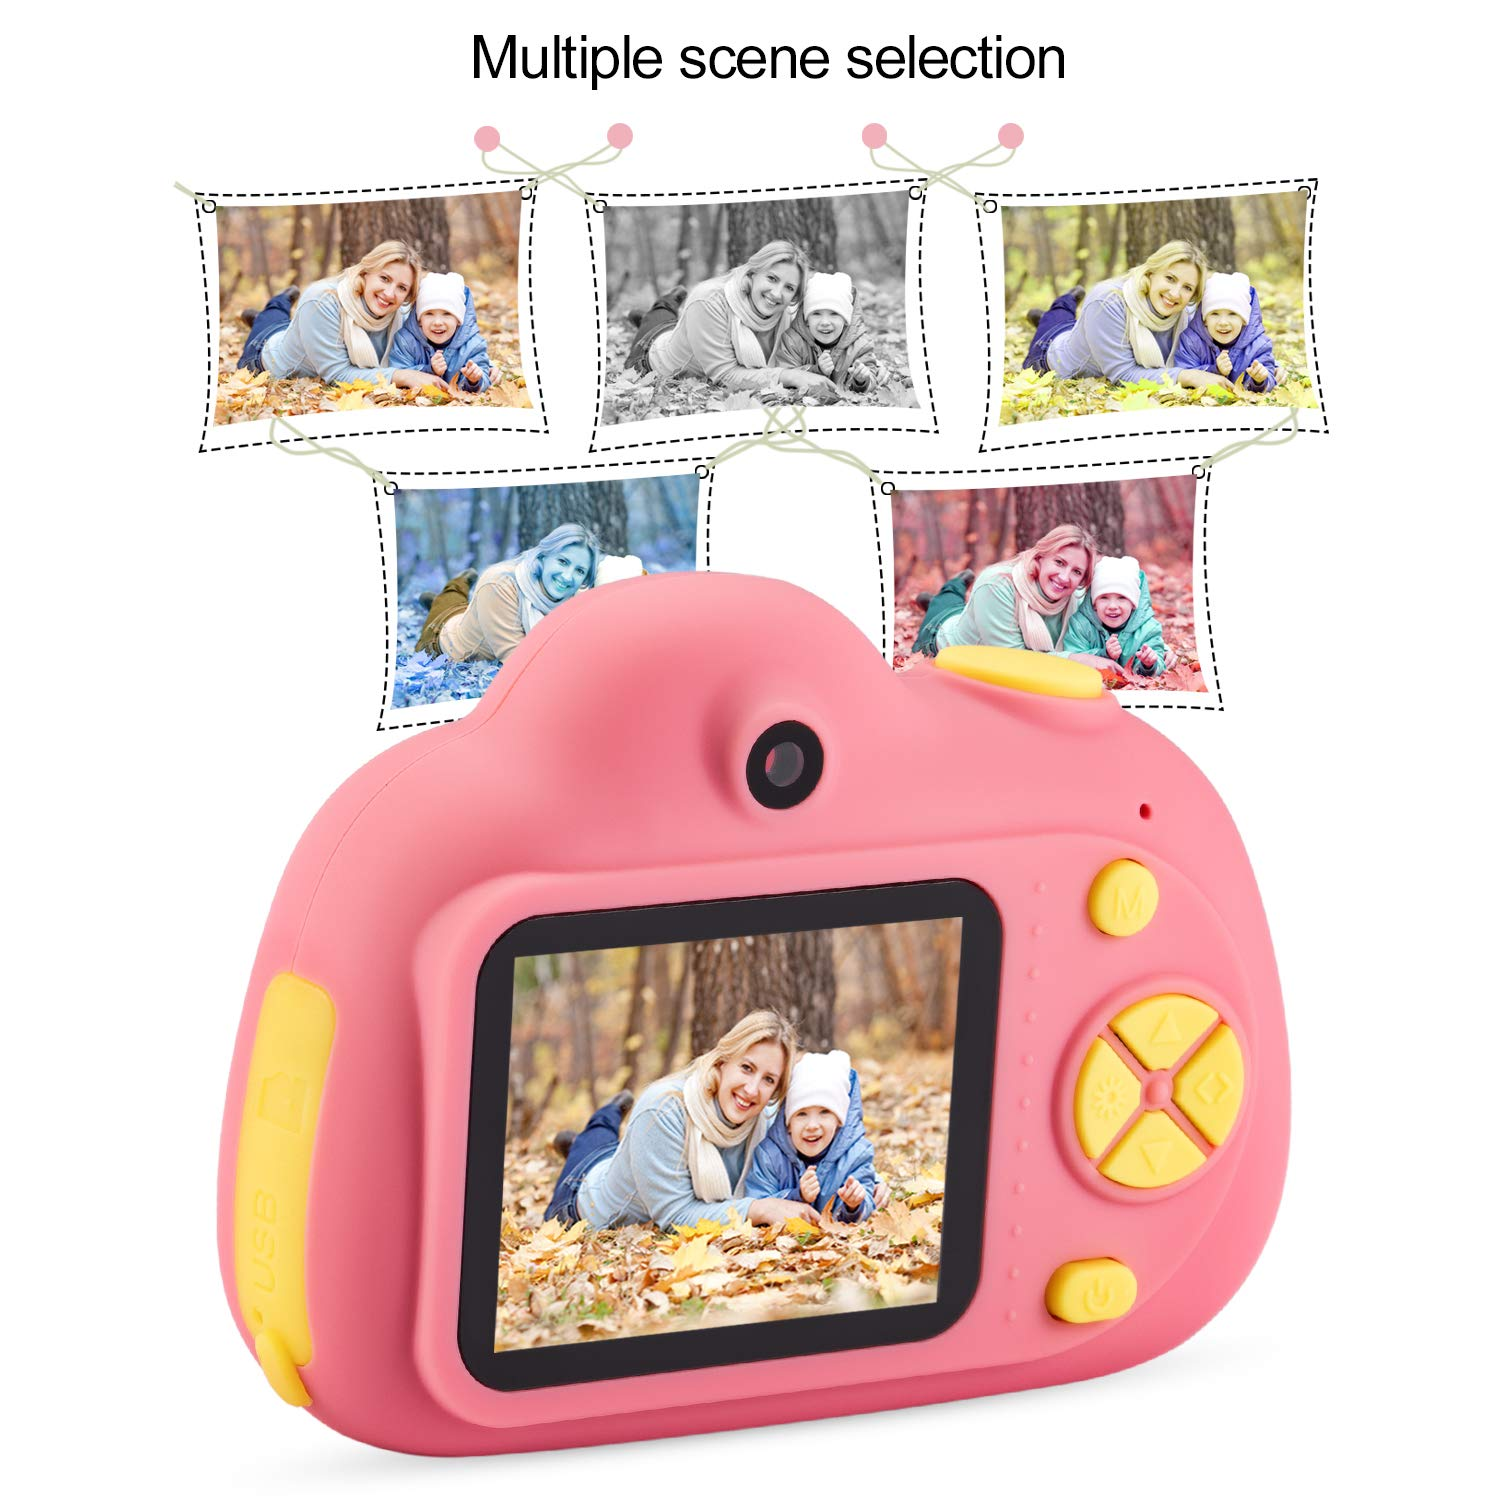 omzer Gift Kids Camera Toys for Girls, Cute Children Cameras Mini Camcorder for 3-8 Years Old Girl with 8MP HD Video Lens Great for Shooting, Deep Pink(16GB Memory Card Included) by omzer (Image #5)